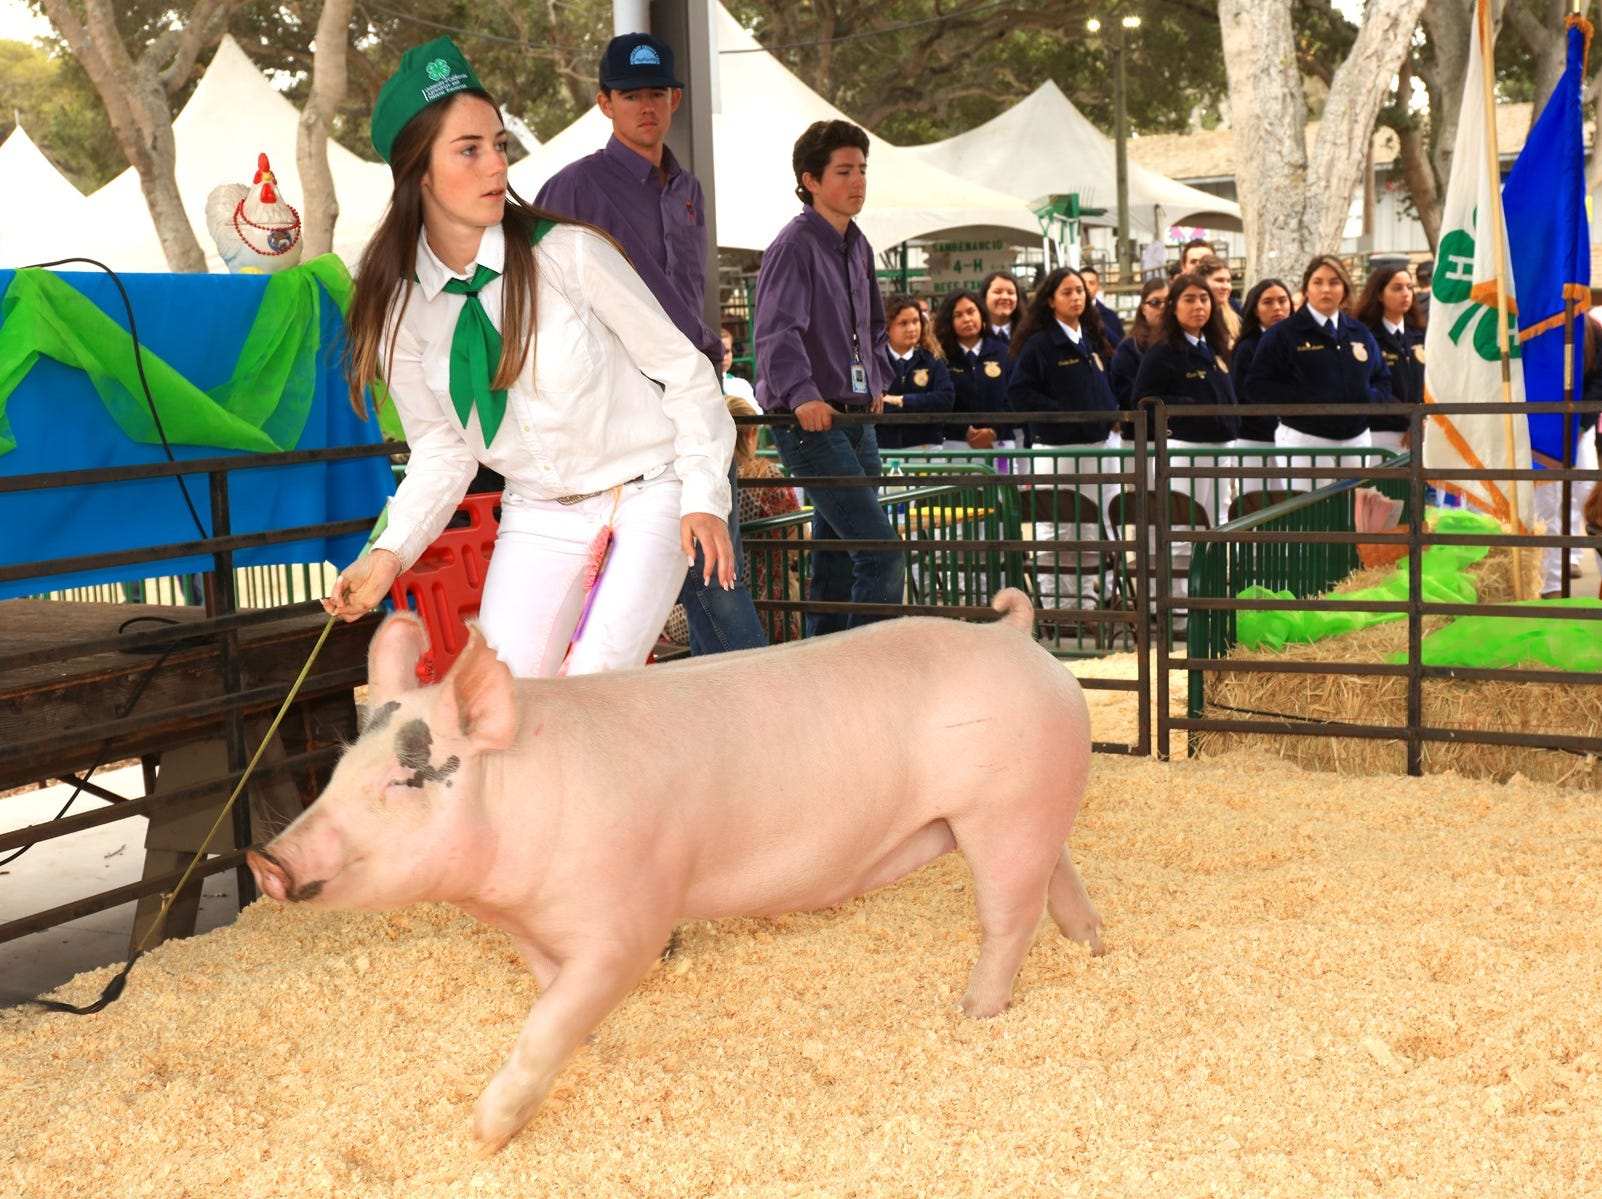 Tory Bradford shows in the 2018 Monterey County Fair Auction.